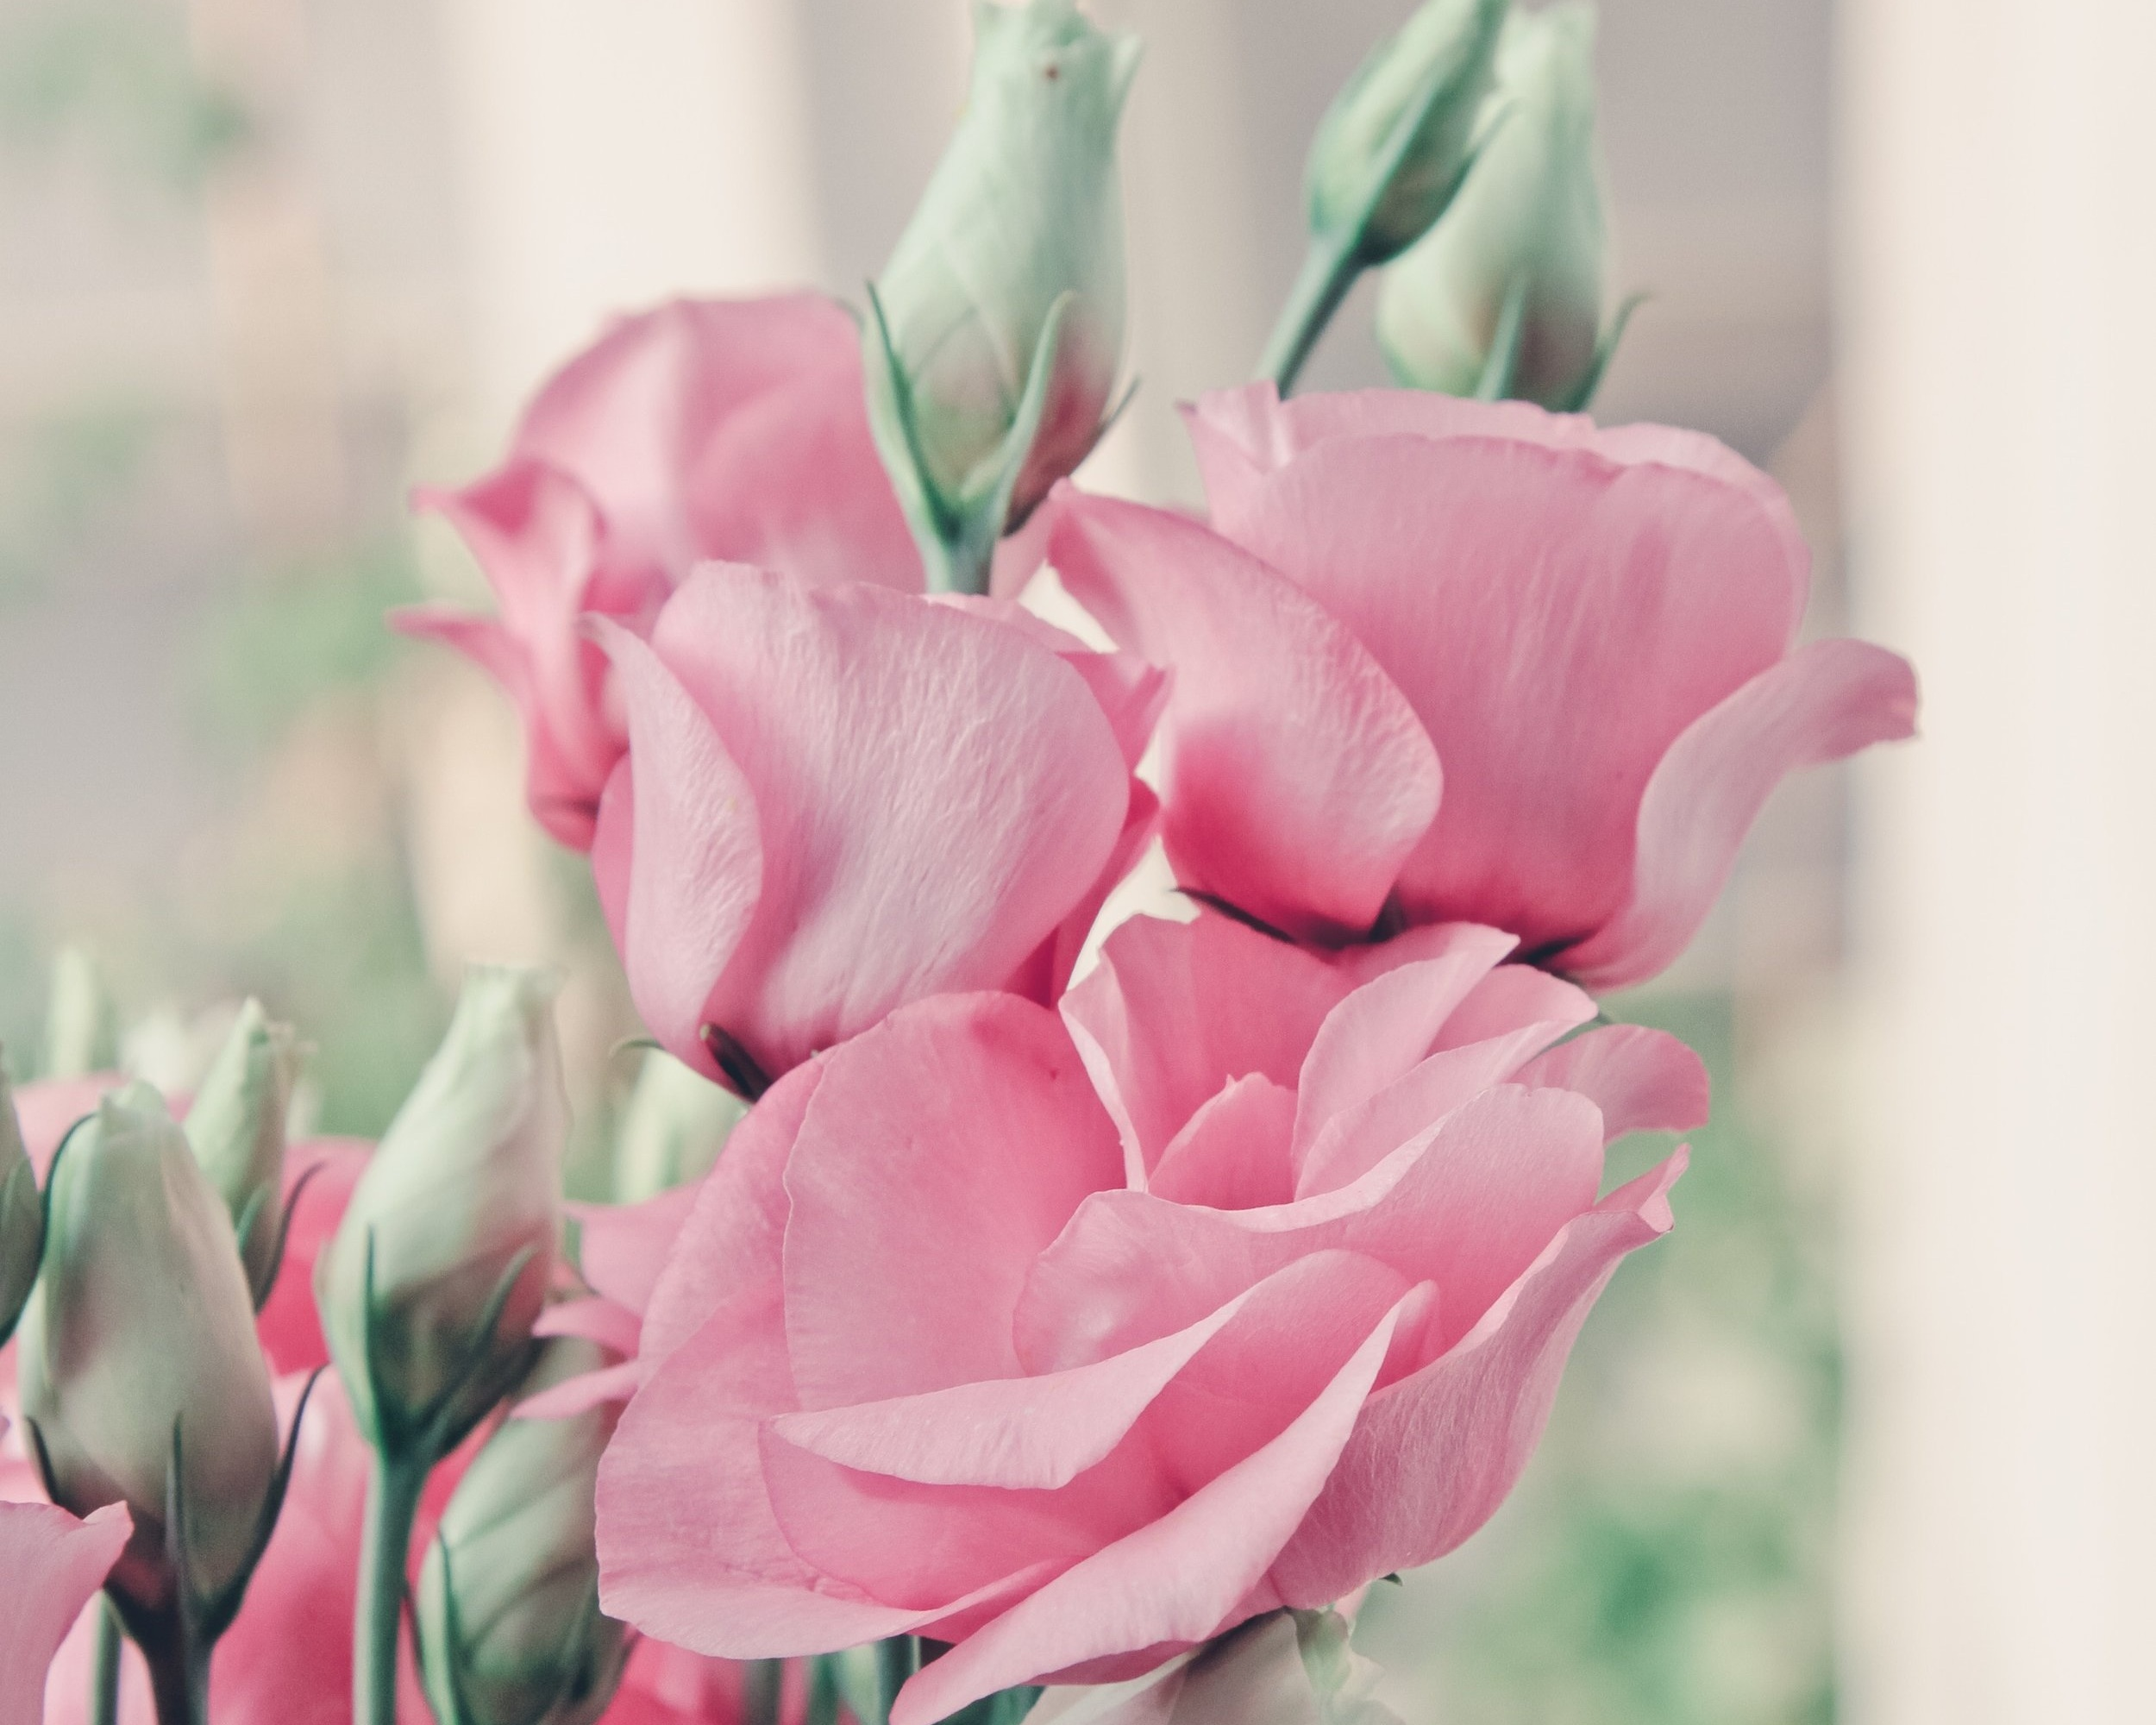 Roses - Roses are the most traditional flower given on Valentine's Day and for good reason!